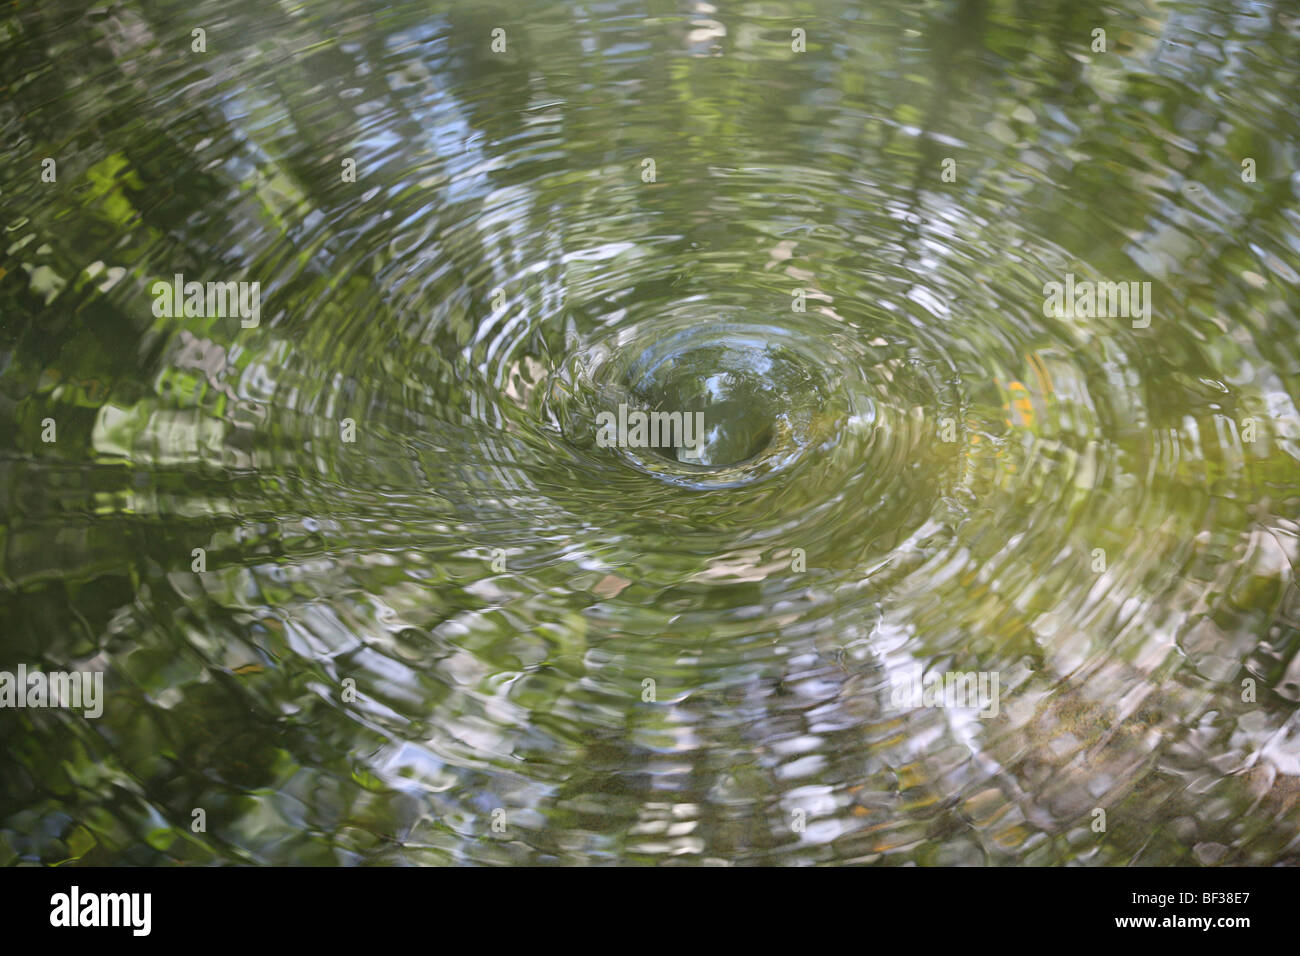 Water Vortex - Stock Image